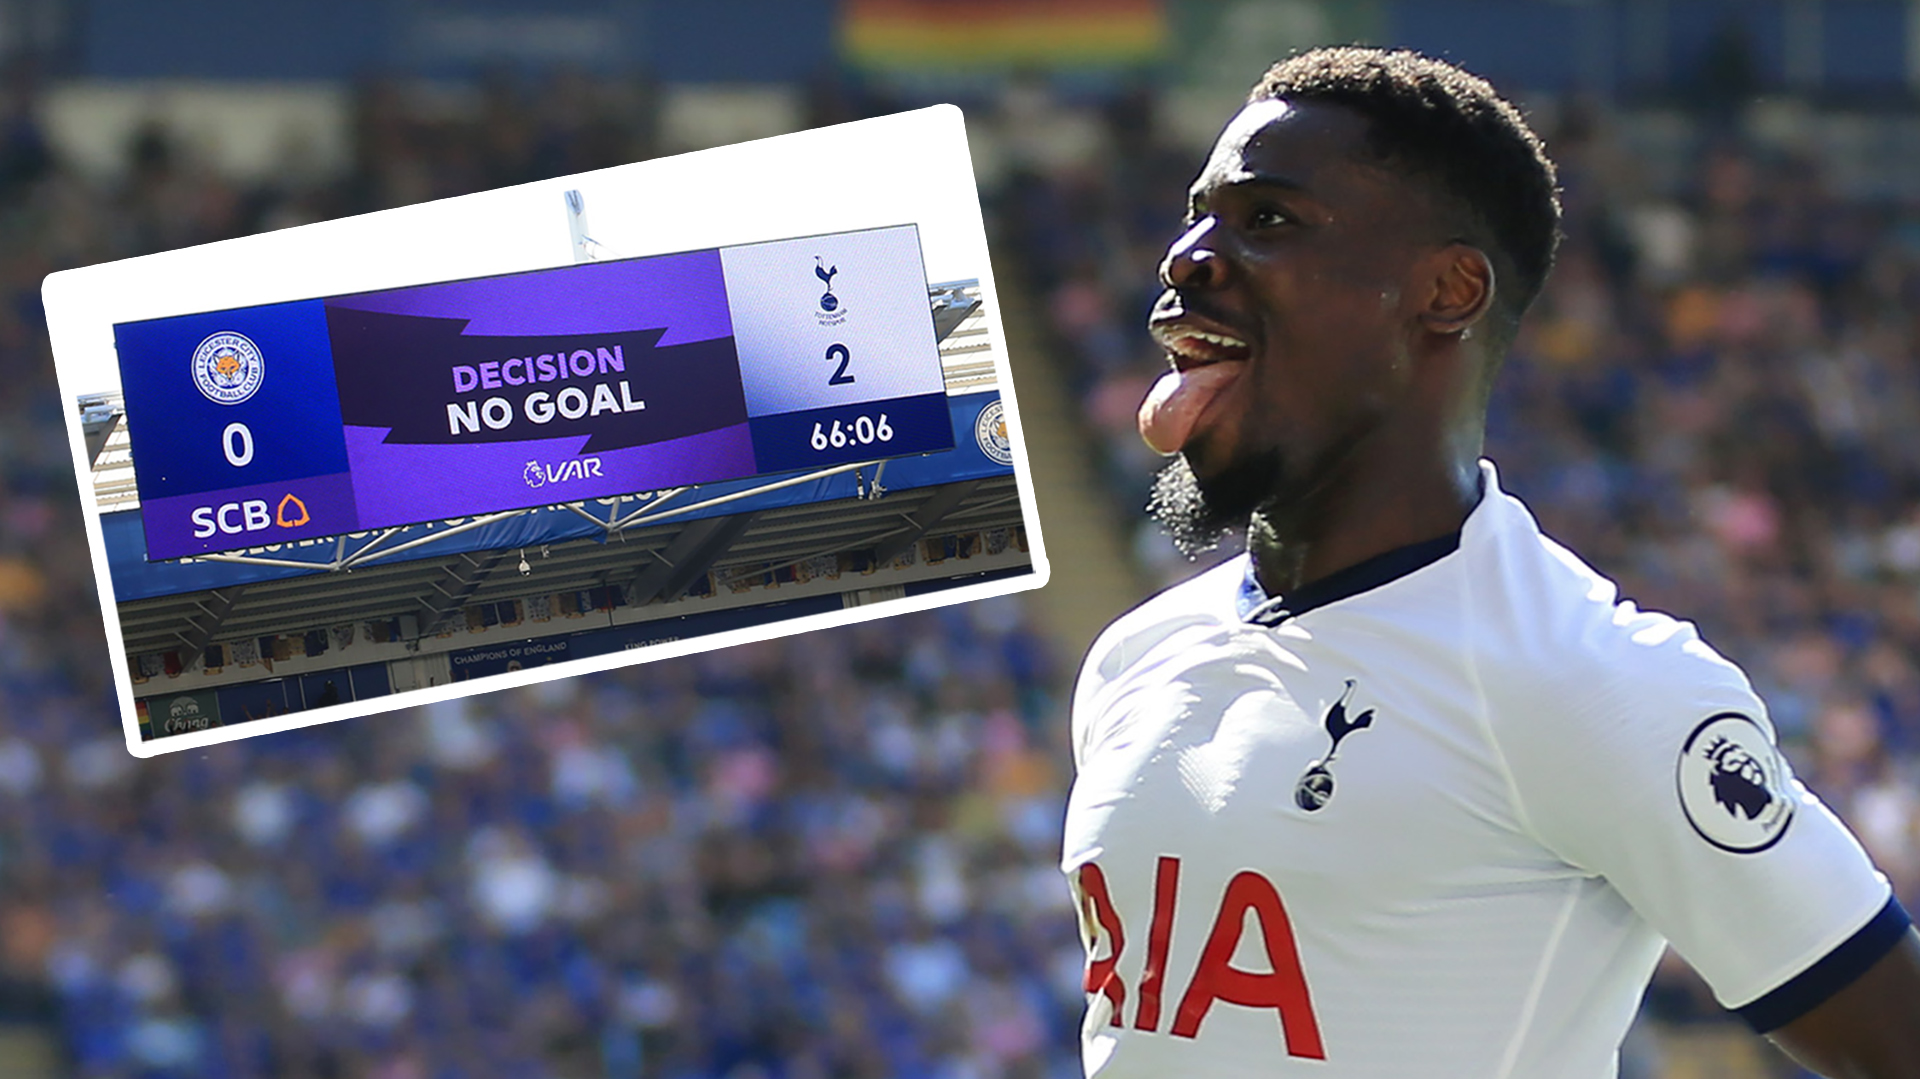 'Son's eyelash was offside' - VAR slammed yet again as Tottenham see Aurier goal controversially ruled out